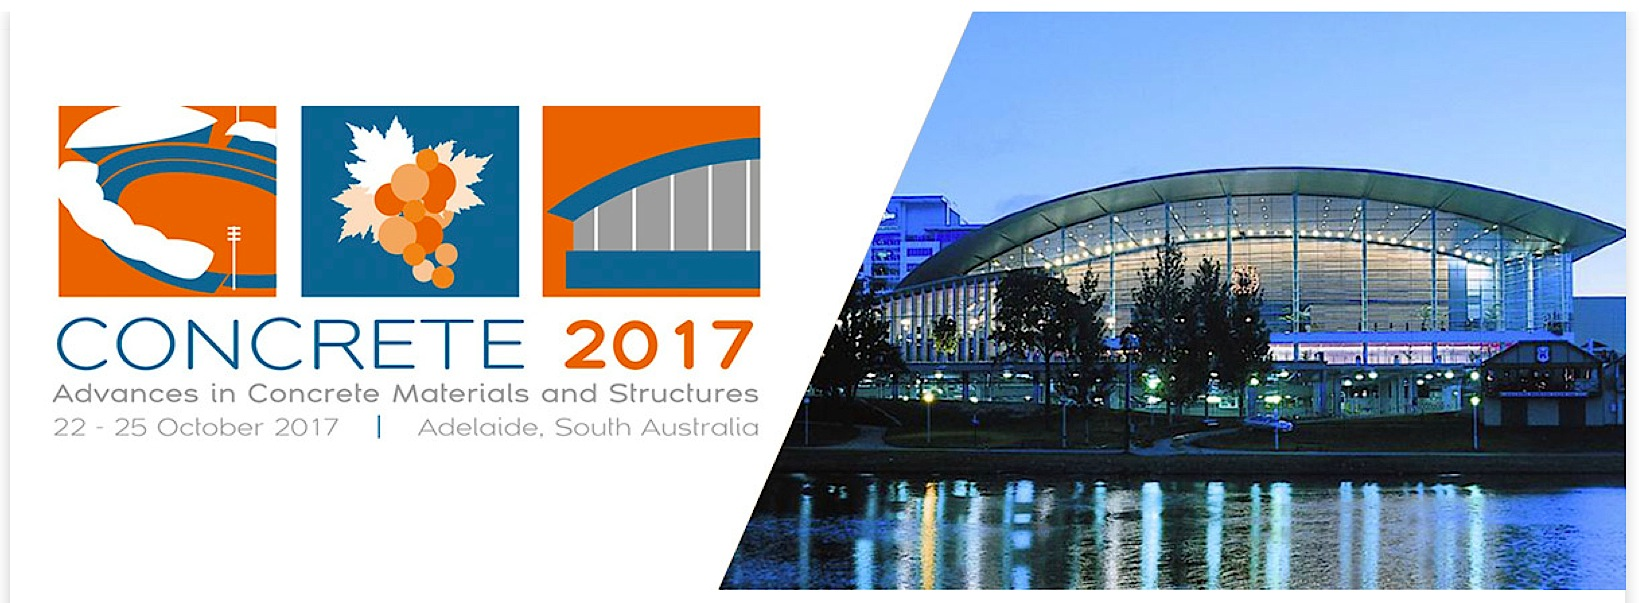 "Australia: Call for Abstracts for ""Concrete 2017"": Abstract Deadline: October 14, 2016"